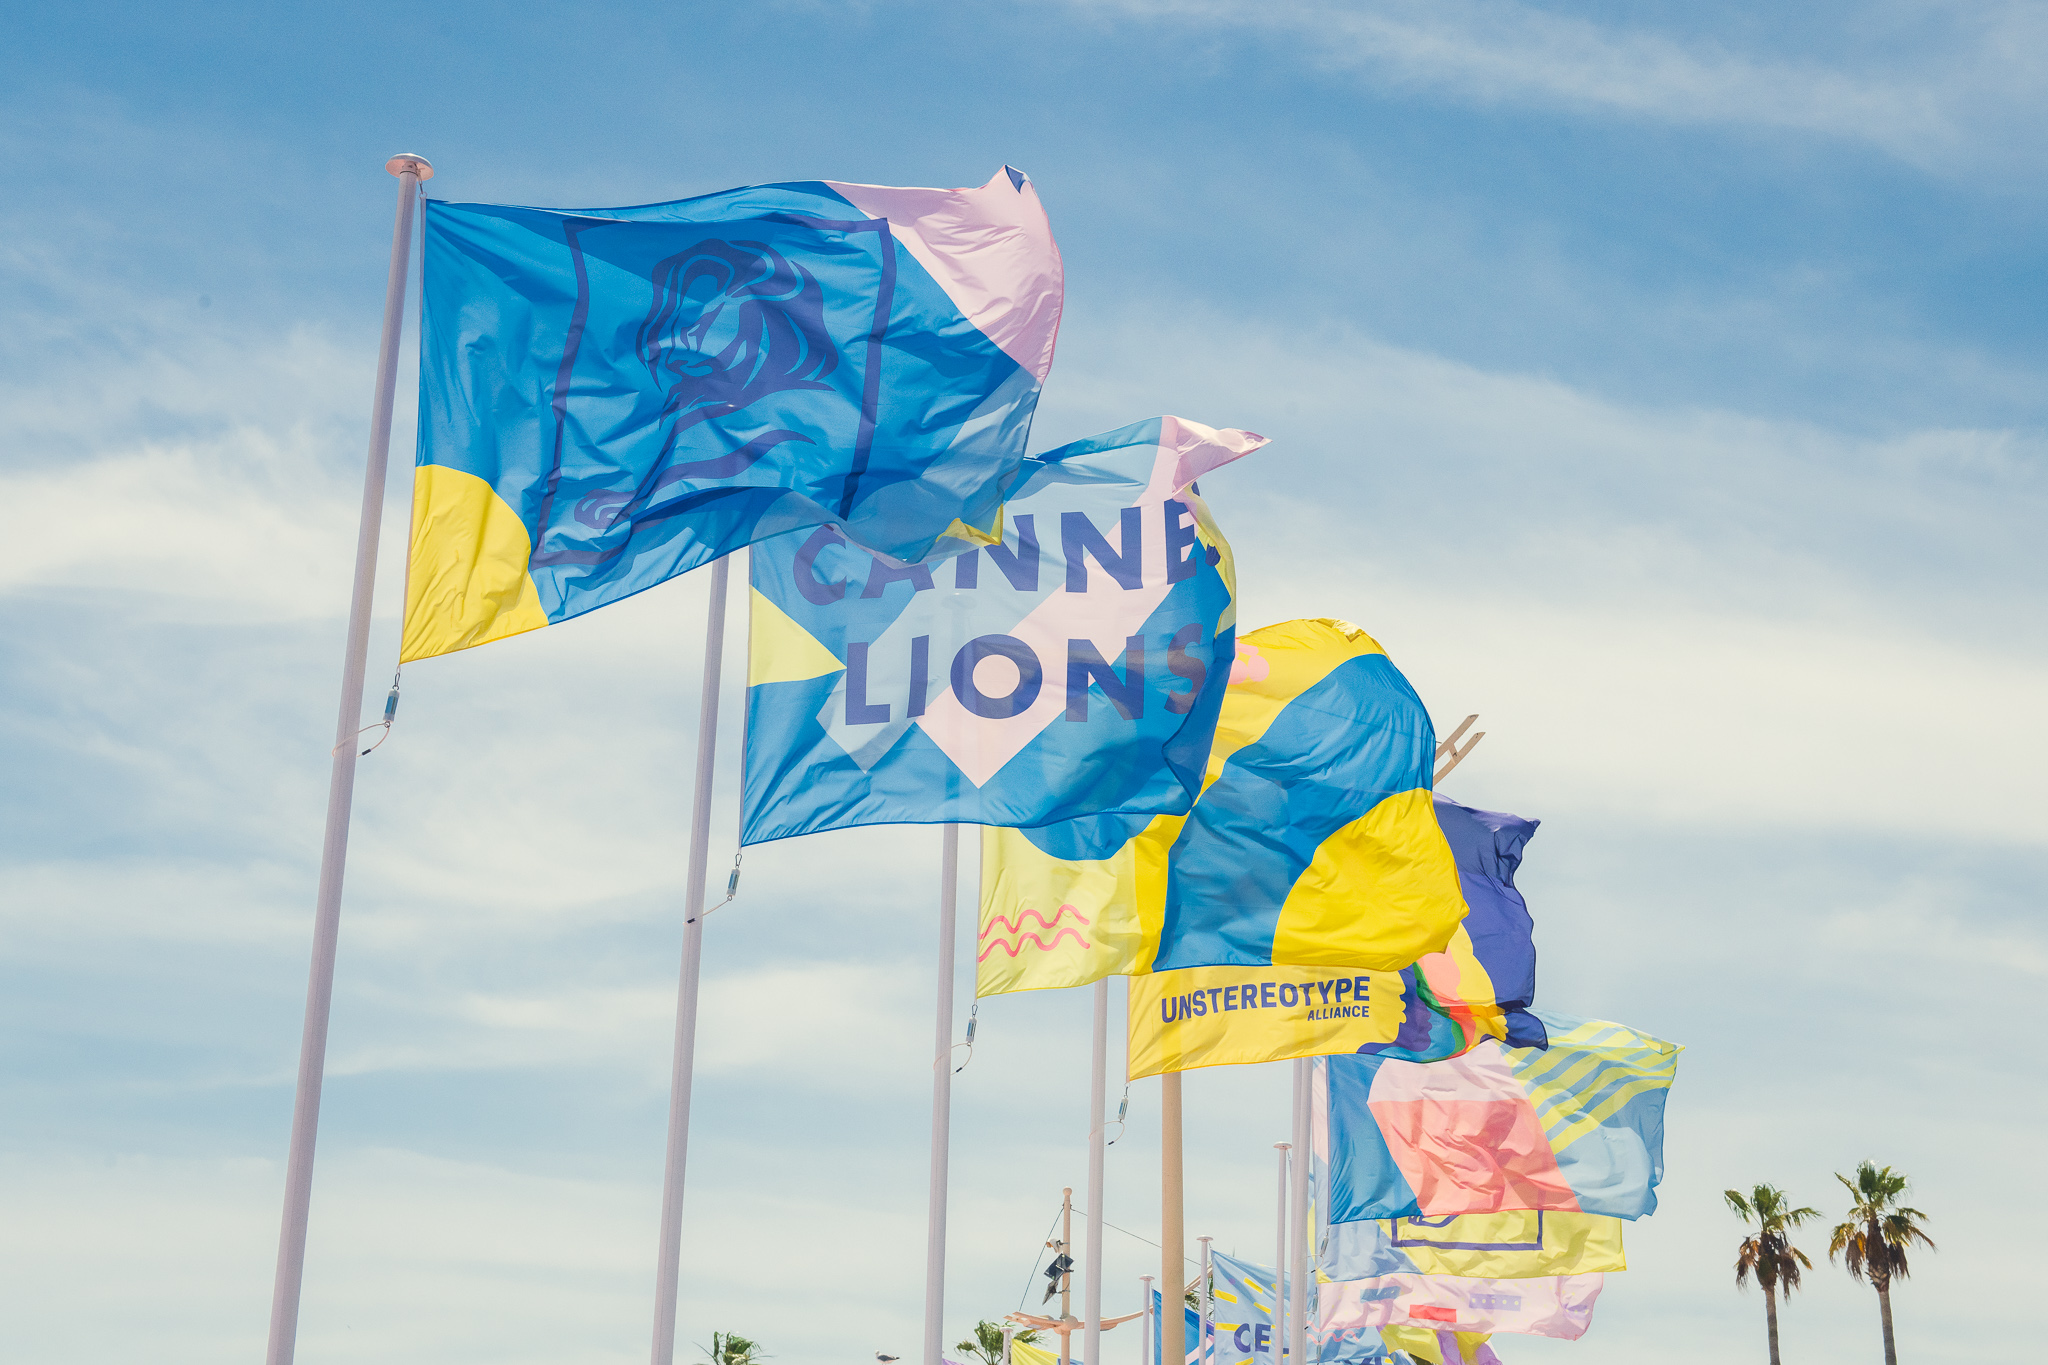 Cannes Lions launches 2020 Festival and content agenda focused on eight industry-driven themes